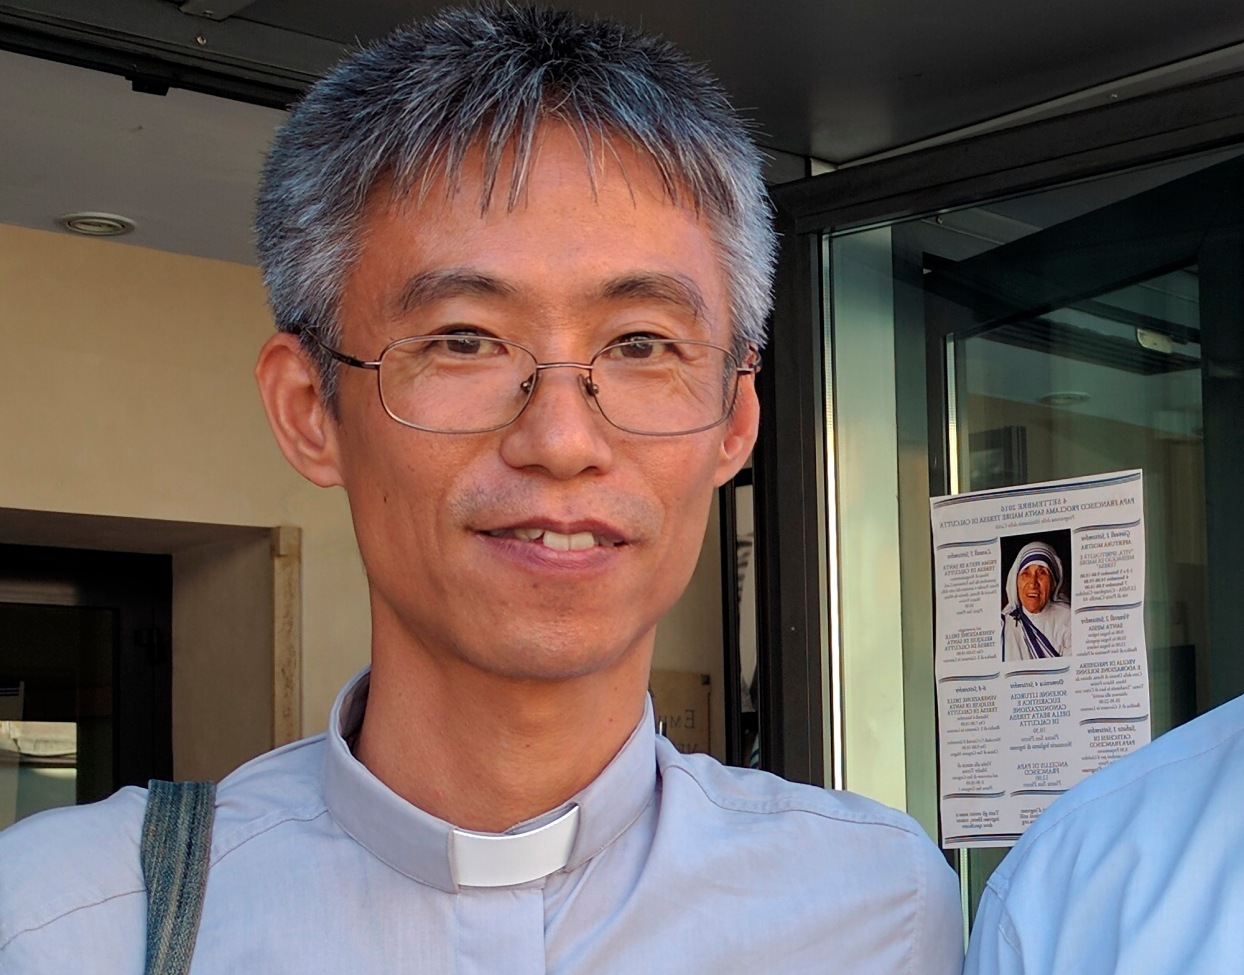 Missionaries of Charity Father Francisco Akihiro from Japan is pictured outside an exhibit on Blessed Teresa of Kolkata in Rome Sept. 2. (CNS/Junno Arocho Esteves)